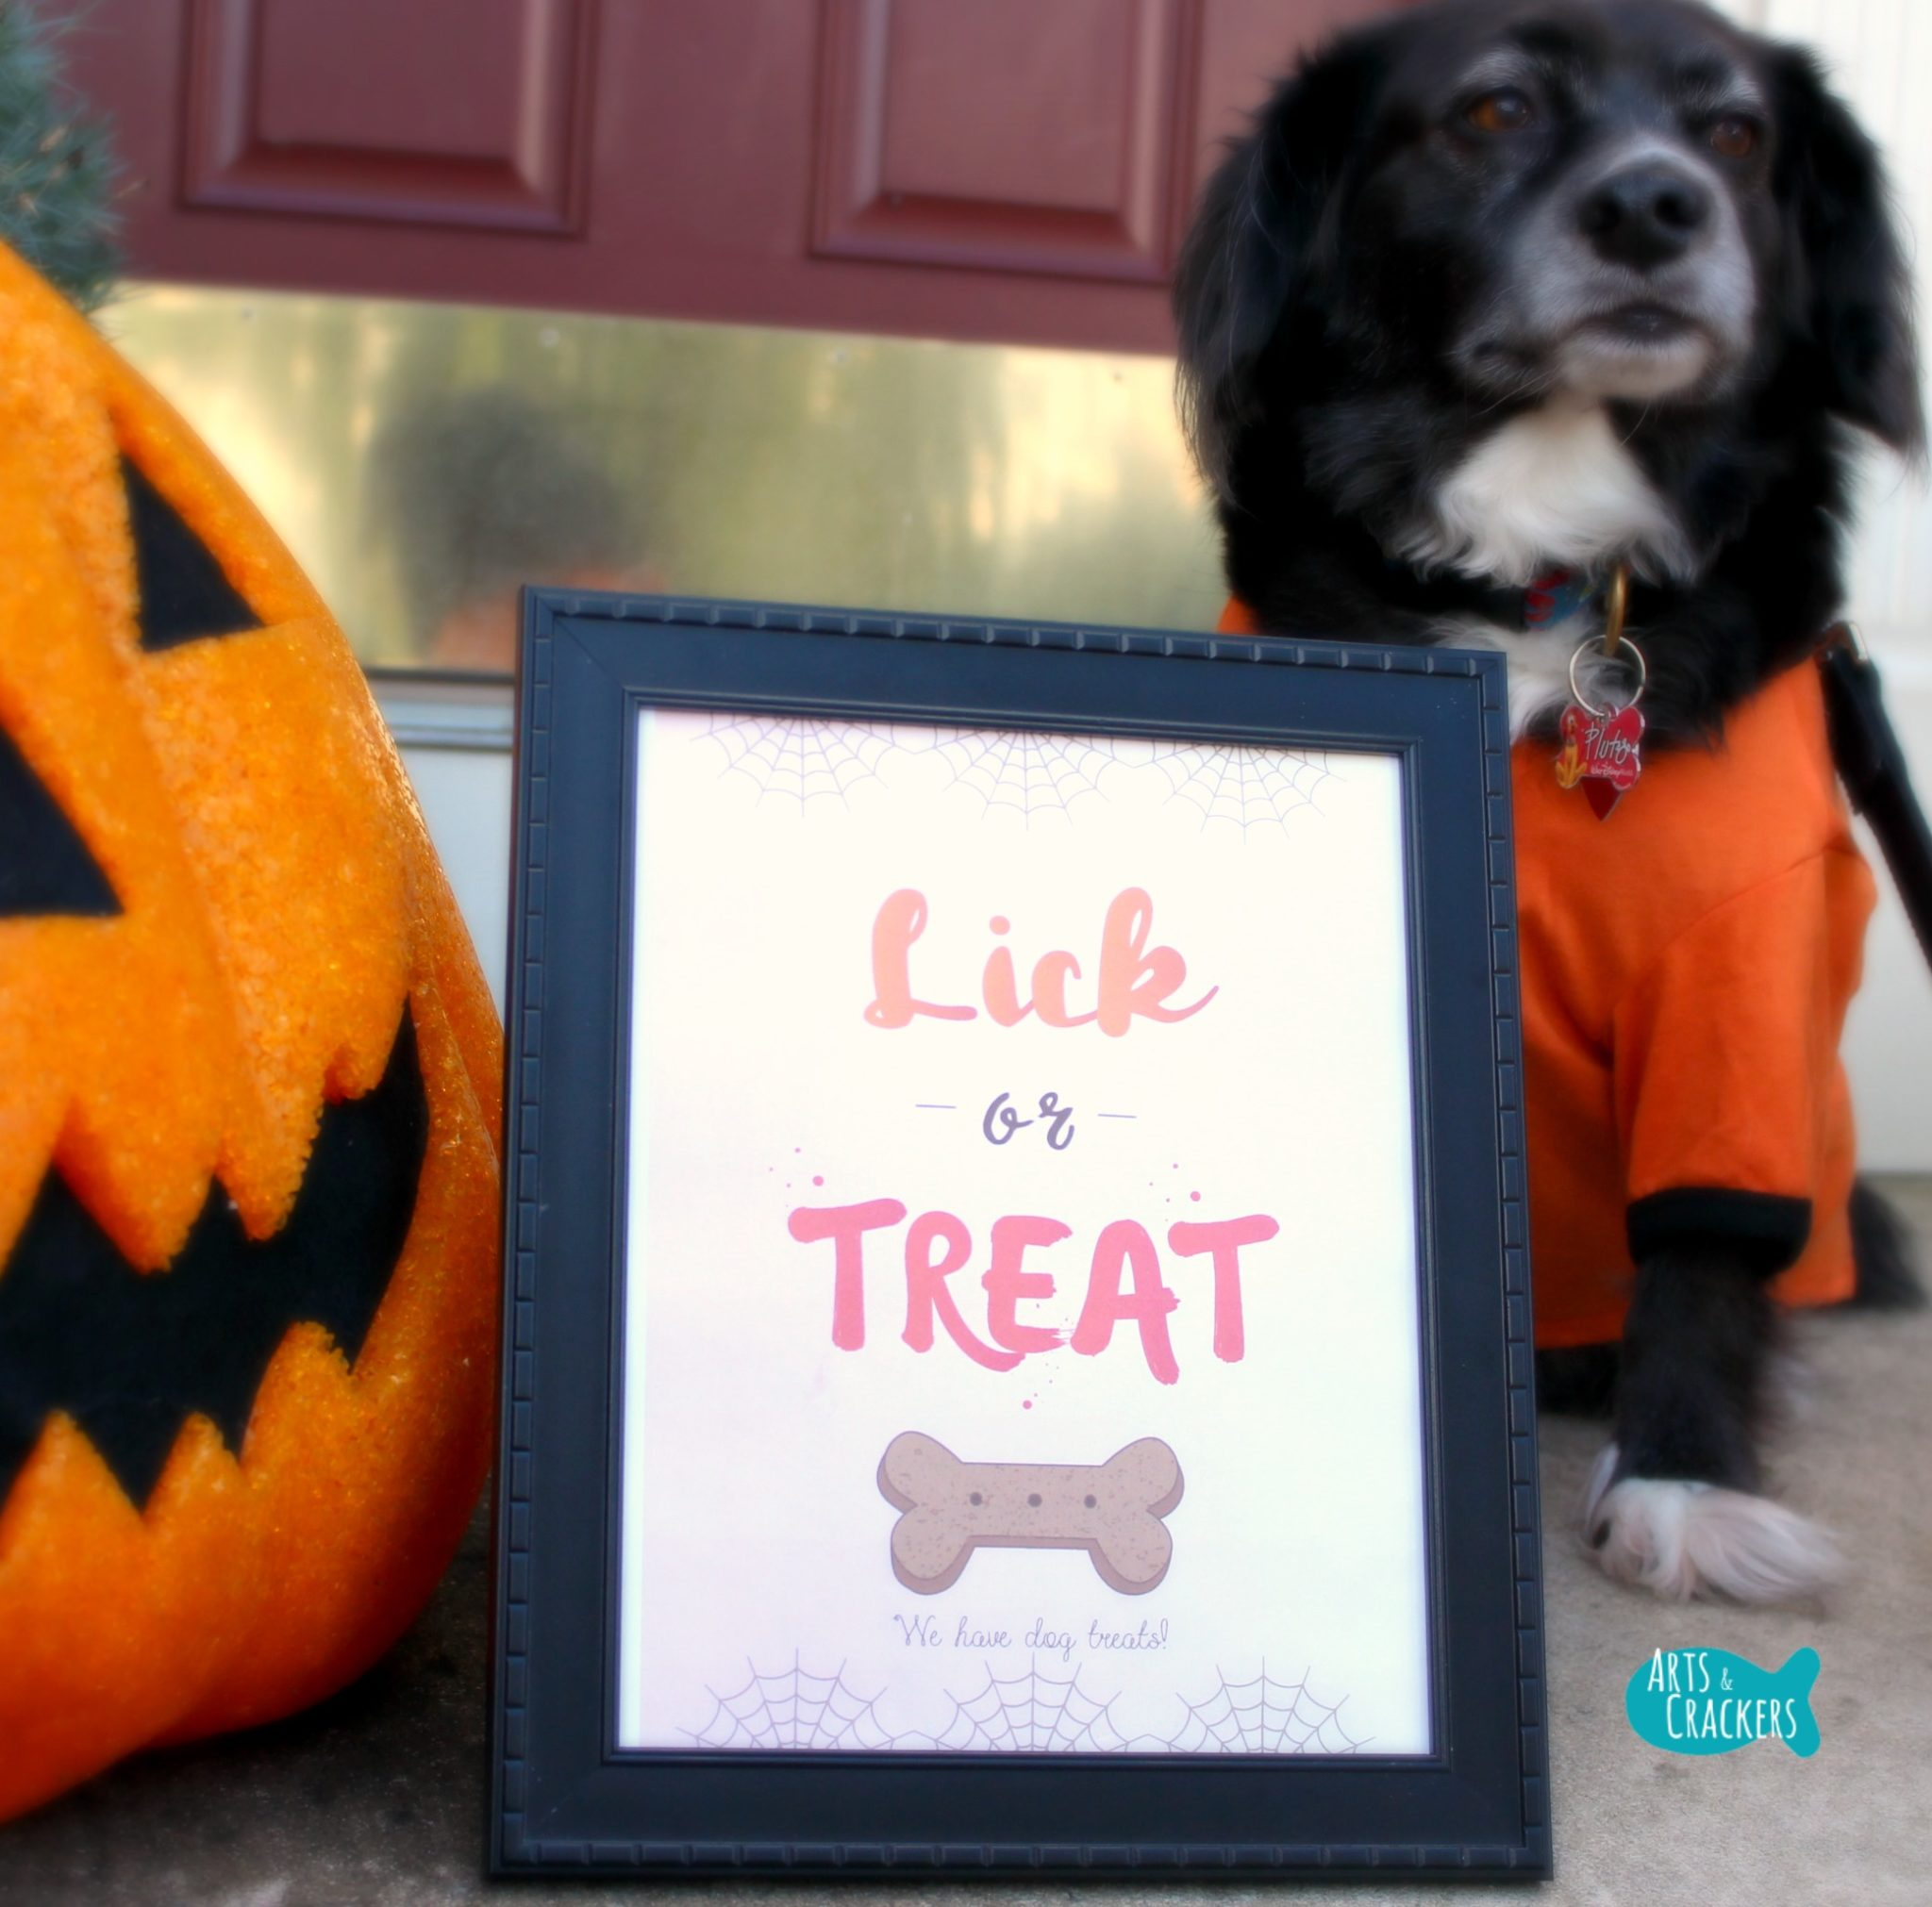 Lick or Treat Halloween sign.